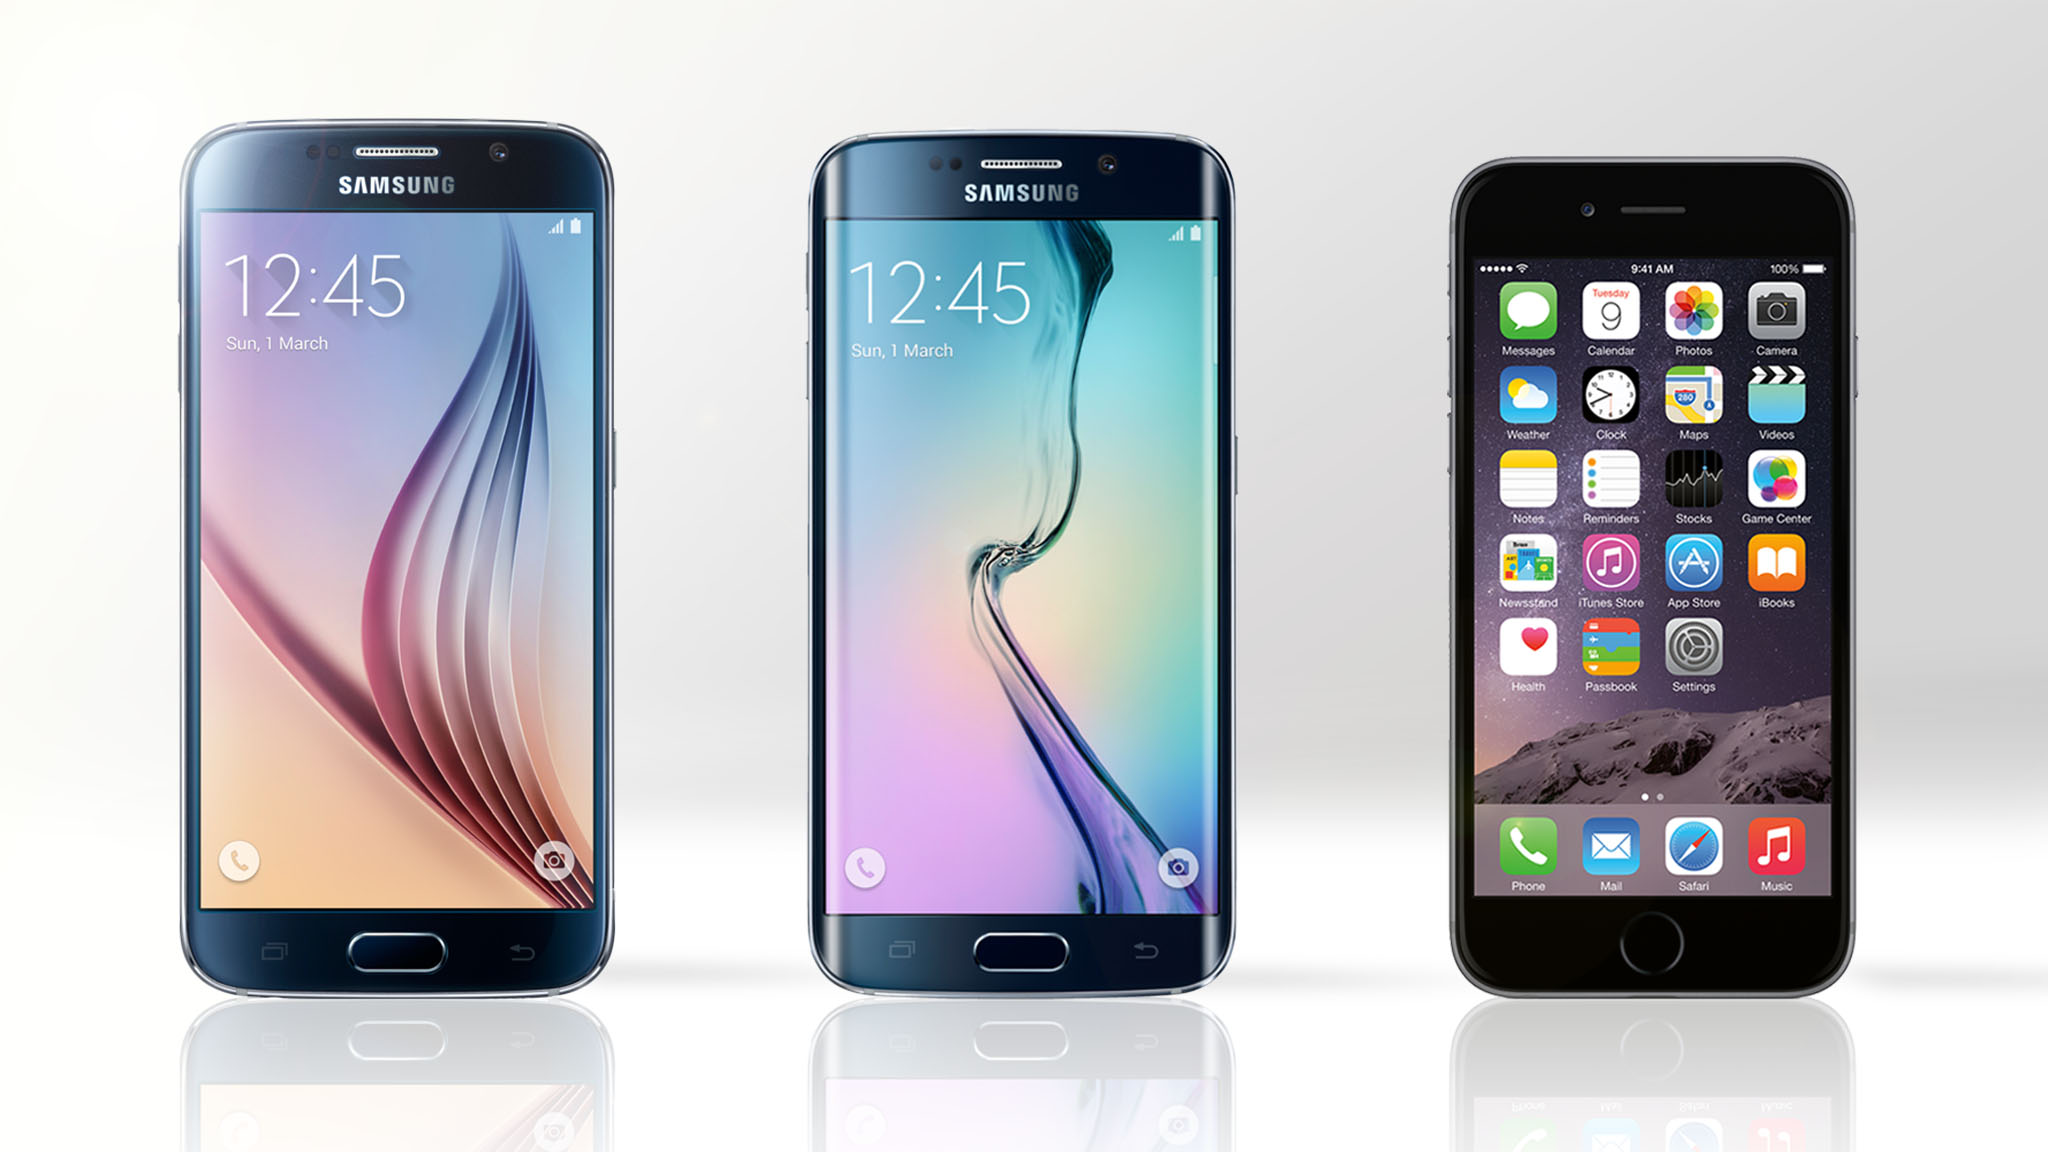 Samsung Galaxy S6 (and GS6 edge) vs. iPhone 6